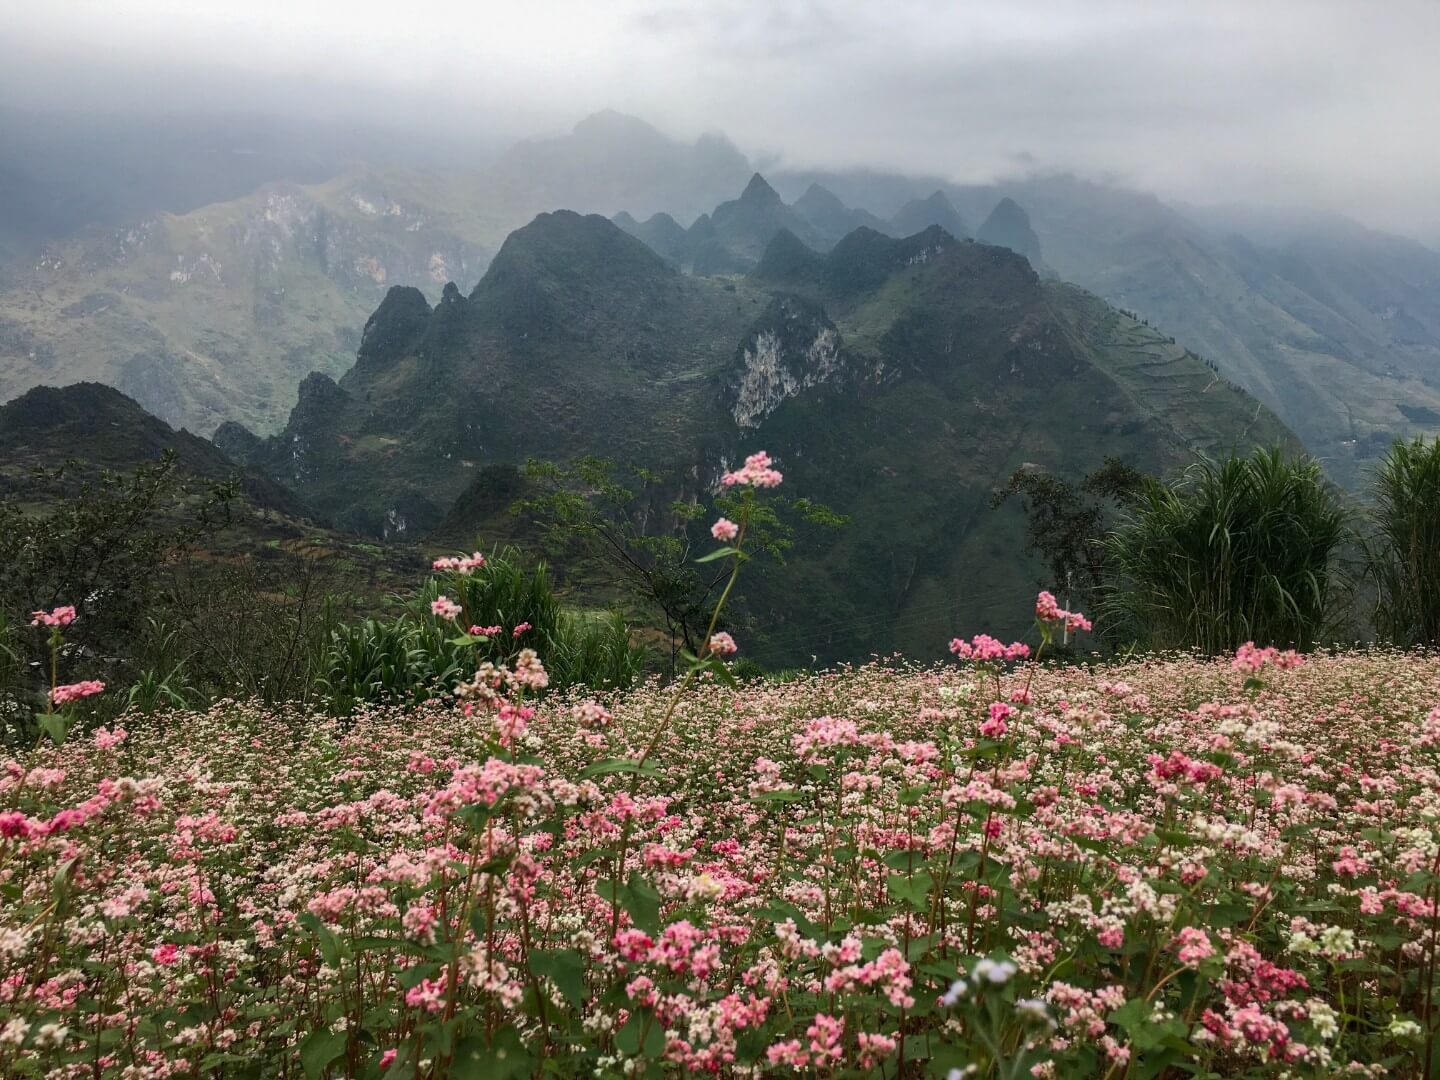 Buckwheat Flowers, Dong Van Karst Plateau, Ha Giang, Vietnam | Moon & Honey Travel